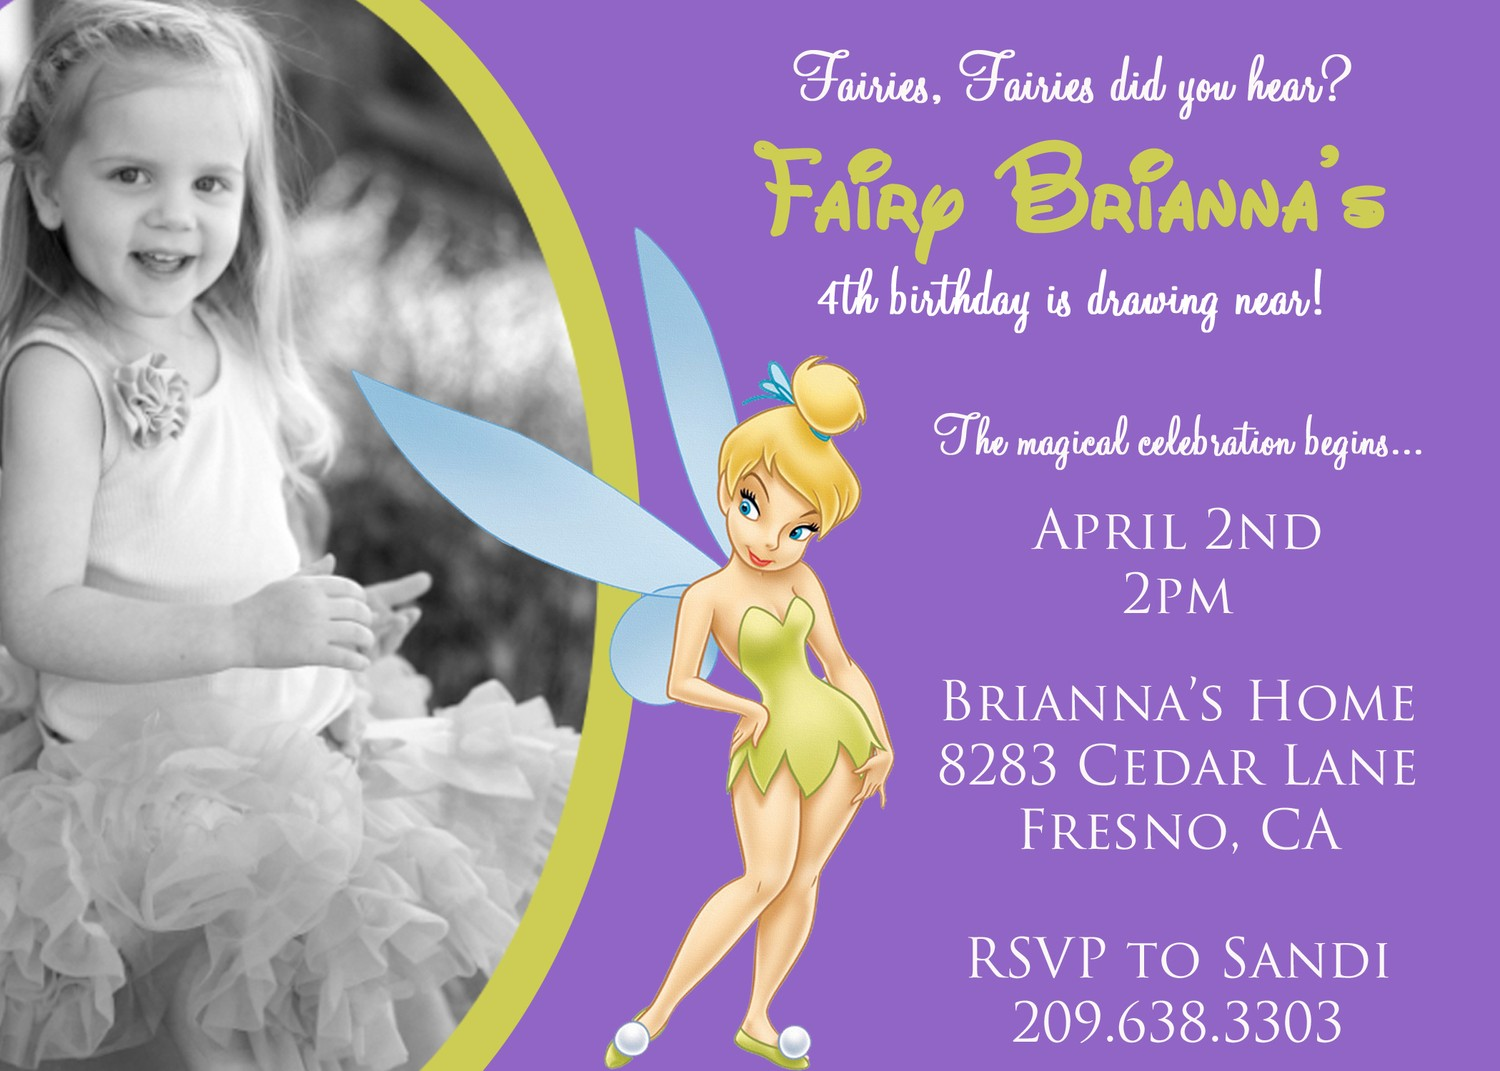 tinkerbell birthday invitation ideas ; Tinkerbell-birthday-invitations-combined-with-your-creativity-will-make-this-looks-awesome-1